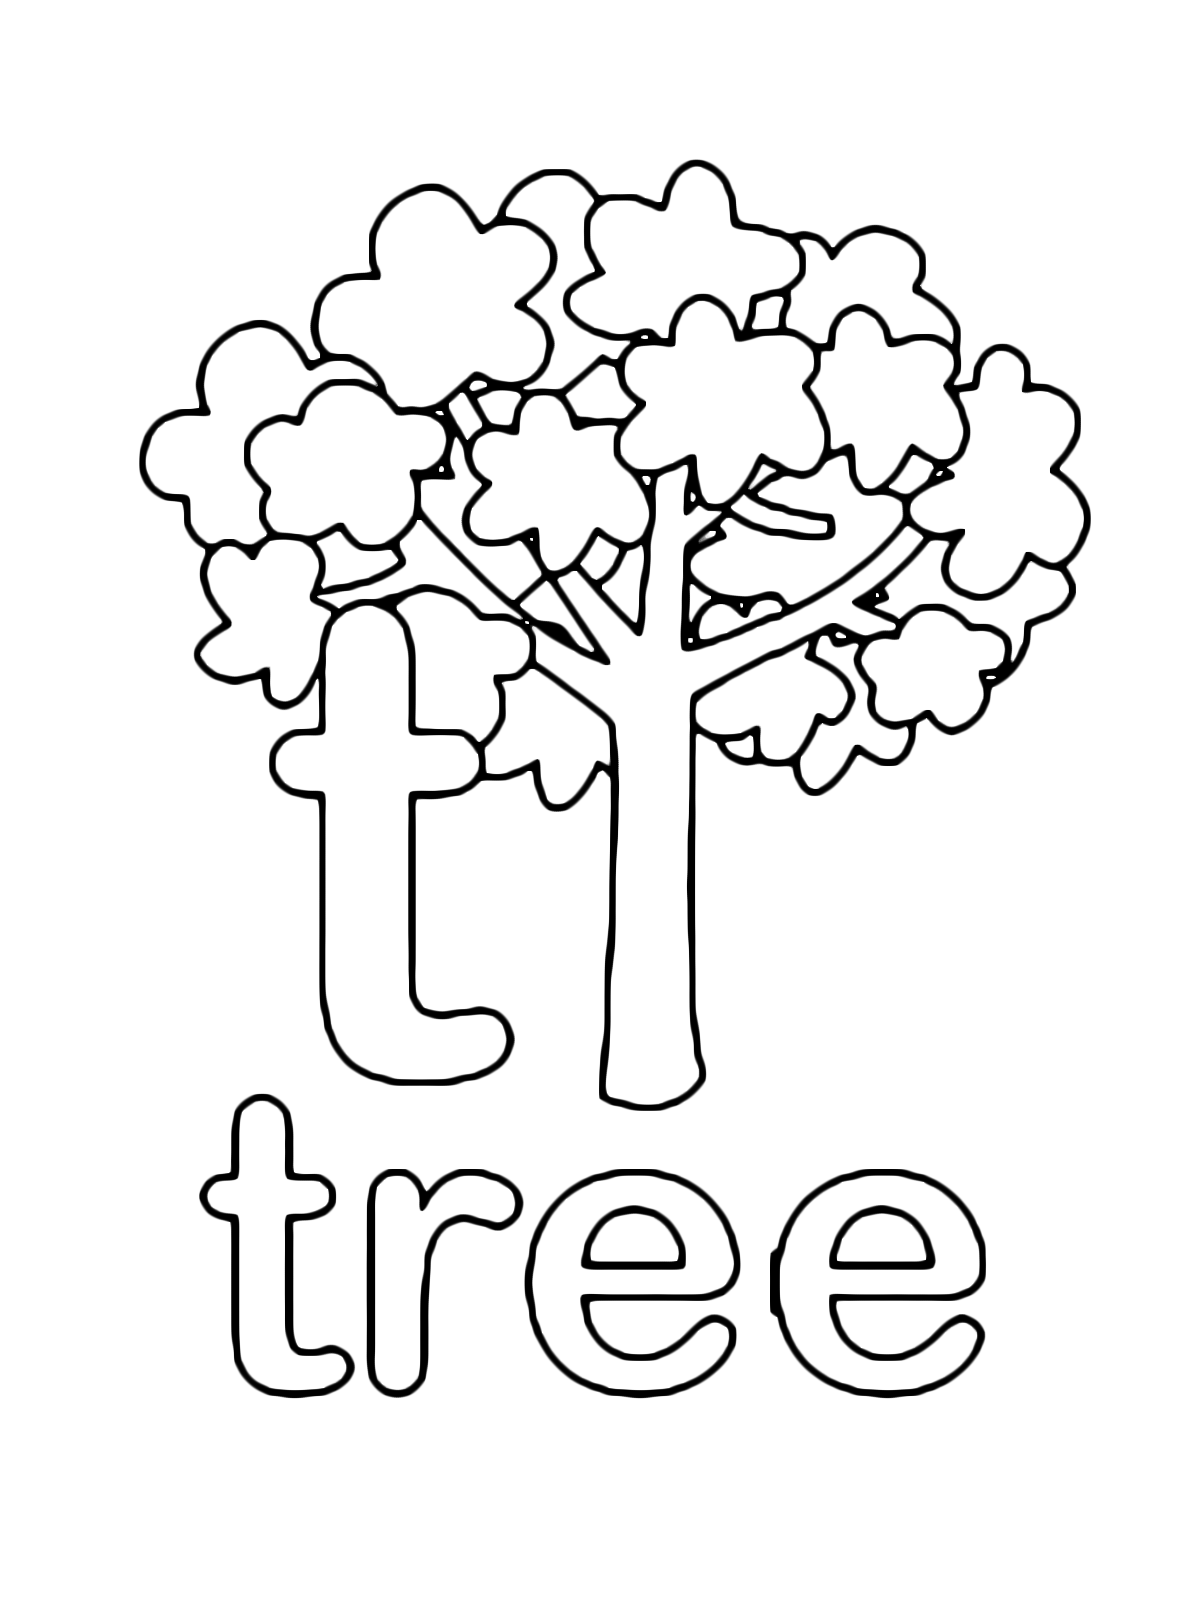 Letters and numbers - t for tree lowercase letter